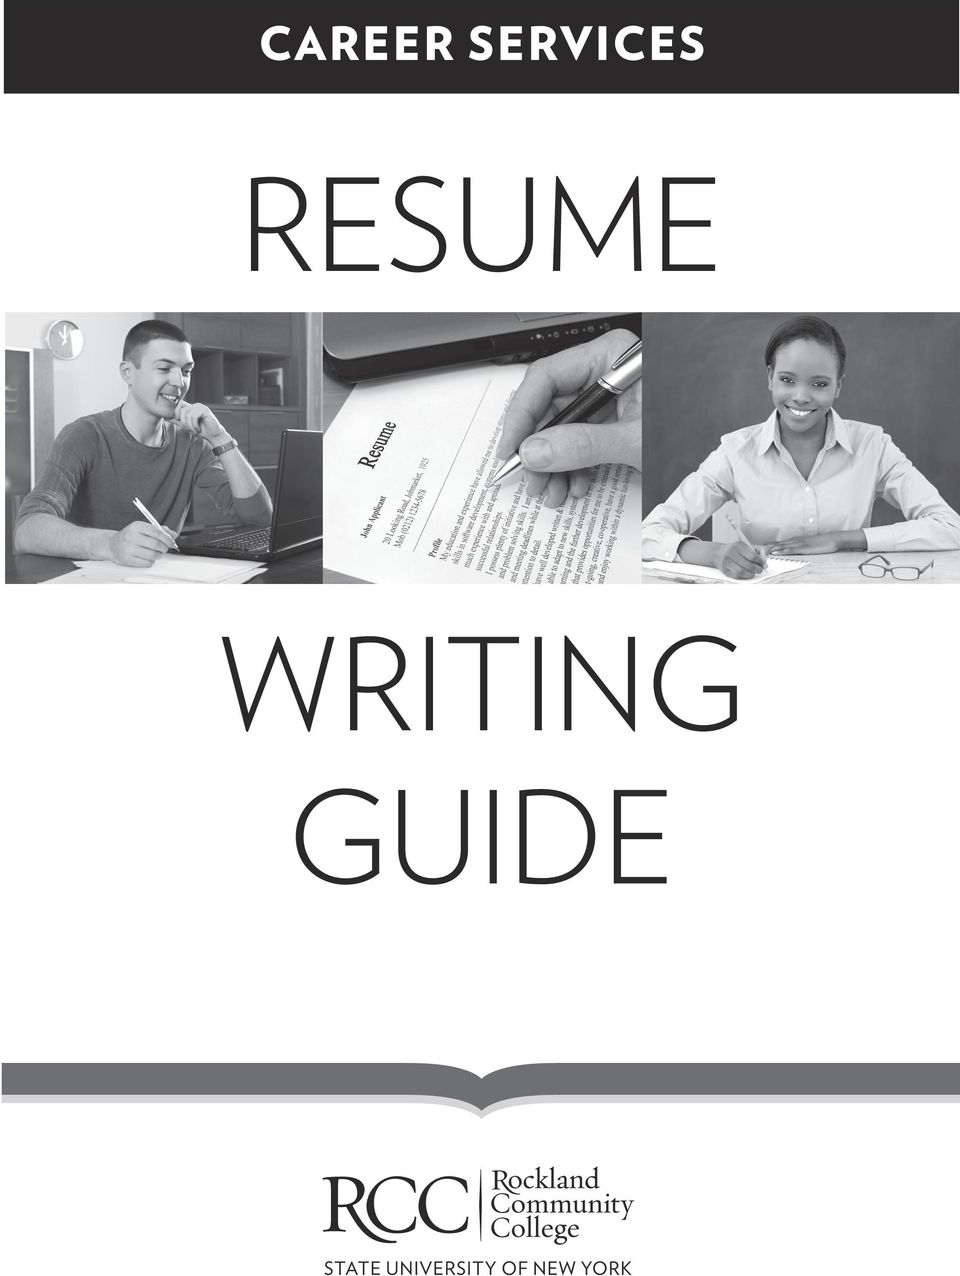 resume writing guide Ss 1600 9204652163 careers@uwgbedu wwwuwgbedu/careers resume writing worksheet the following worksheet will help you construct various sections of your resume.